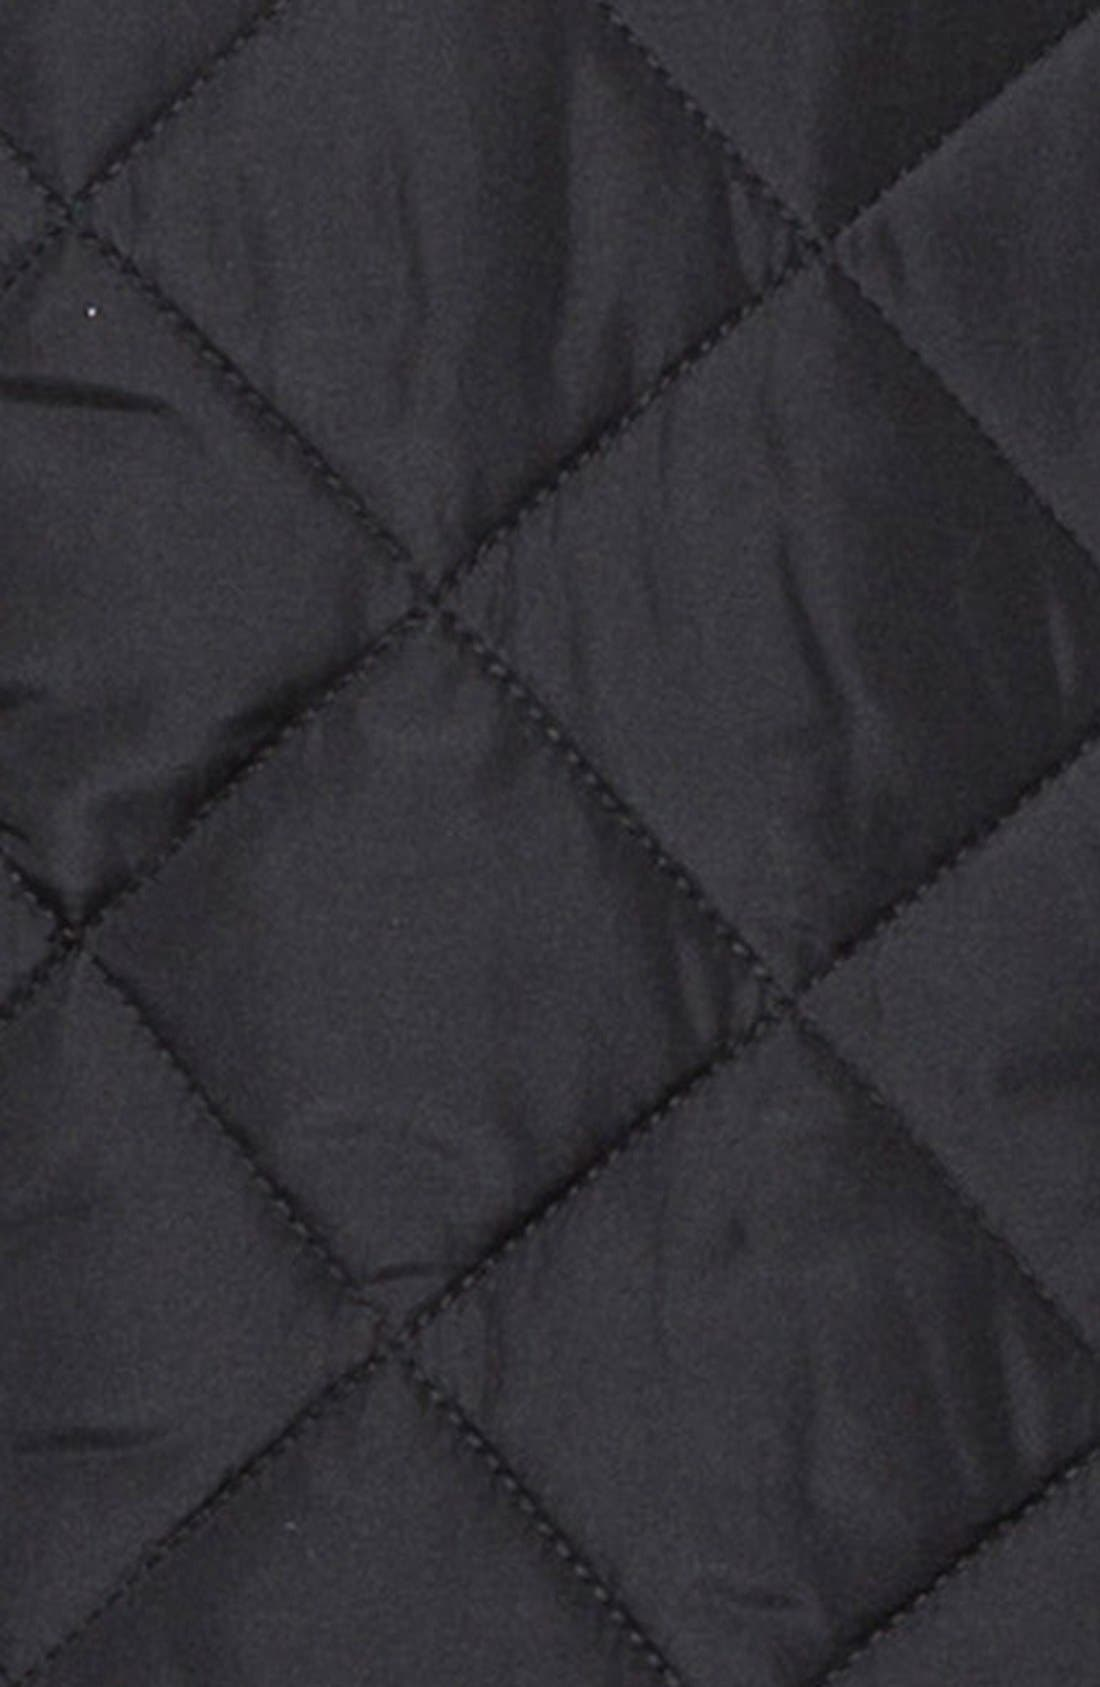 'Gatti' Quilted Panel Lambswool Knit Jacket,                             Alternate thumbnail 4, color,                             001